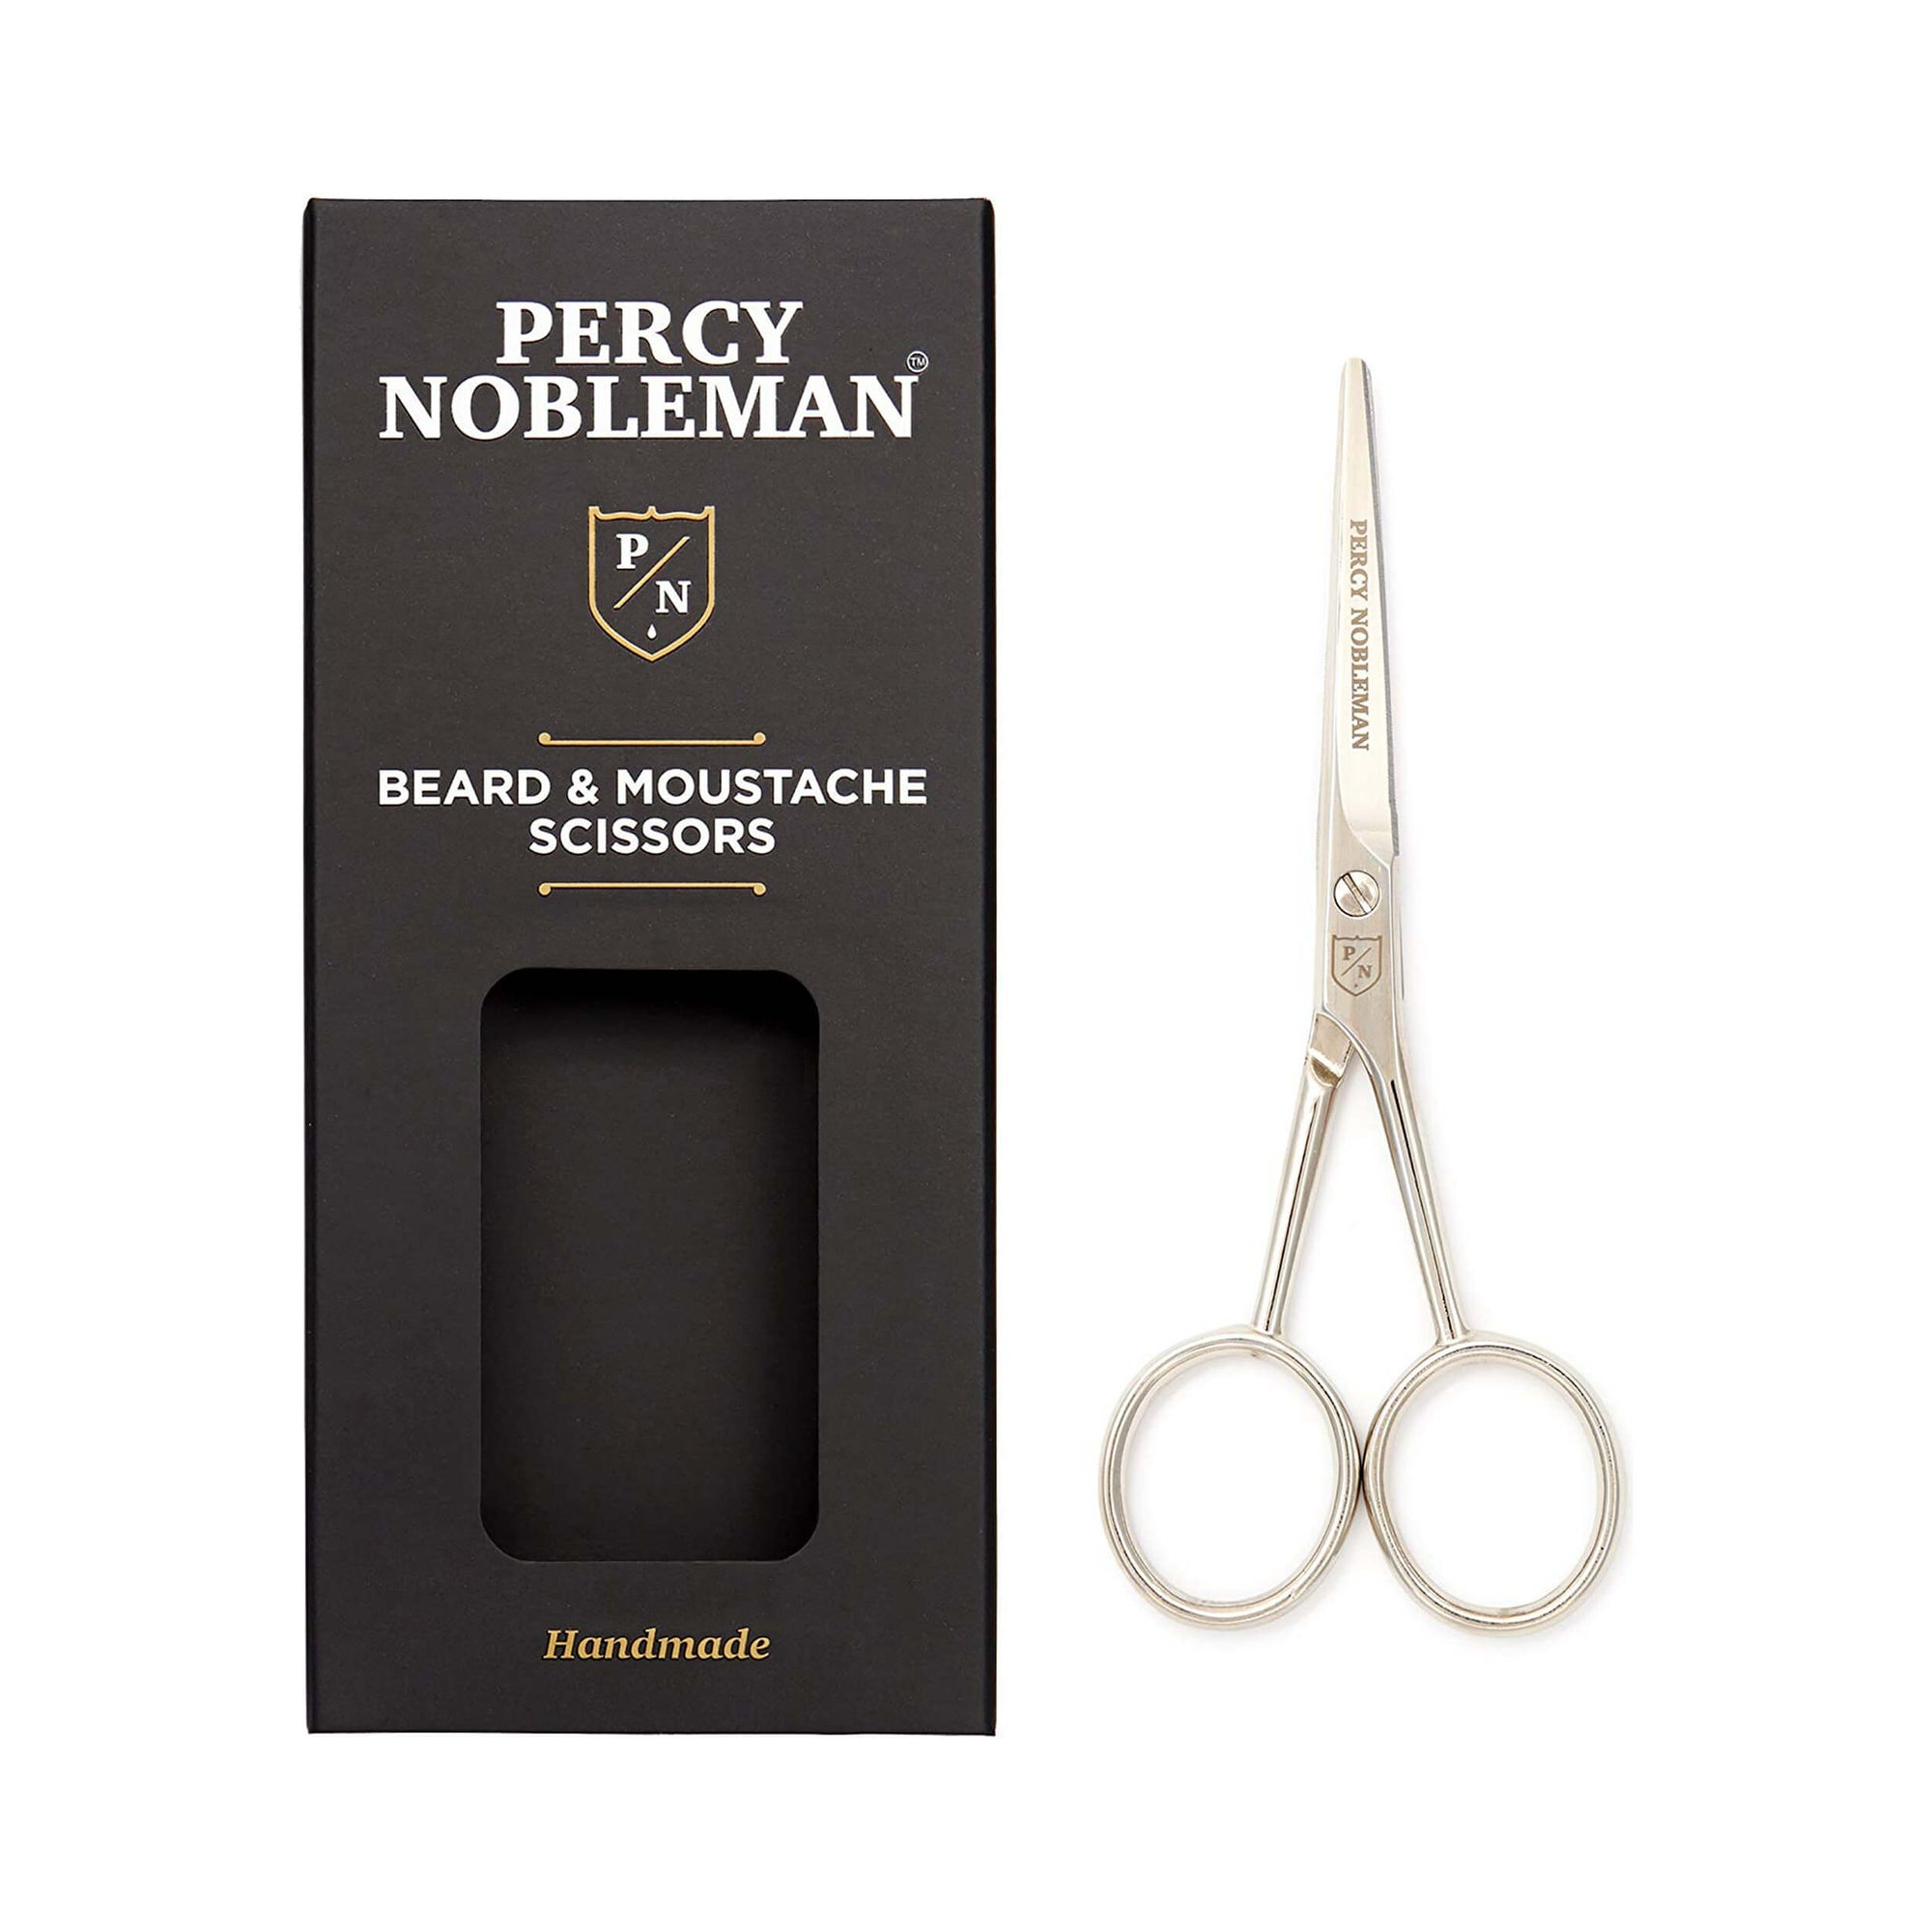 Percy Nobleman Beard Moustache Scissors